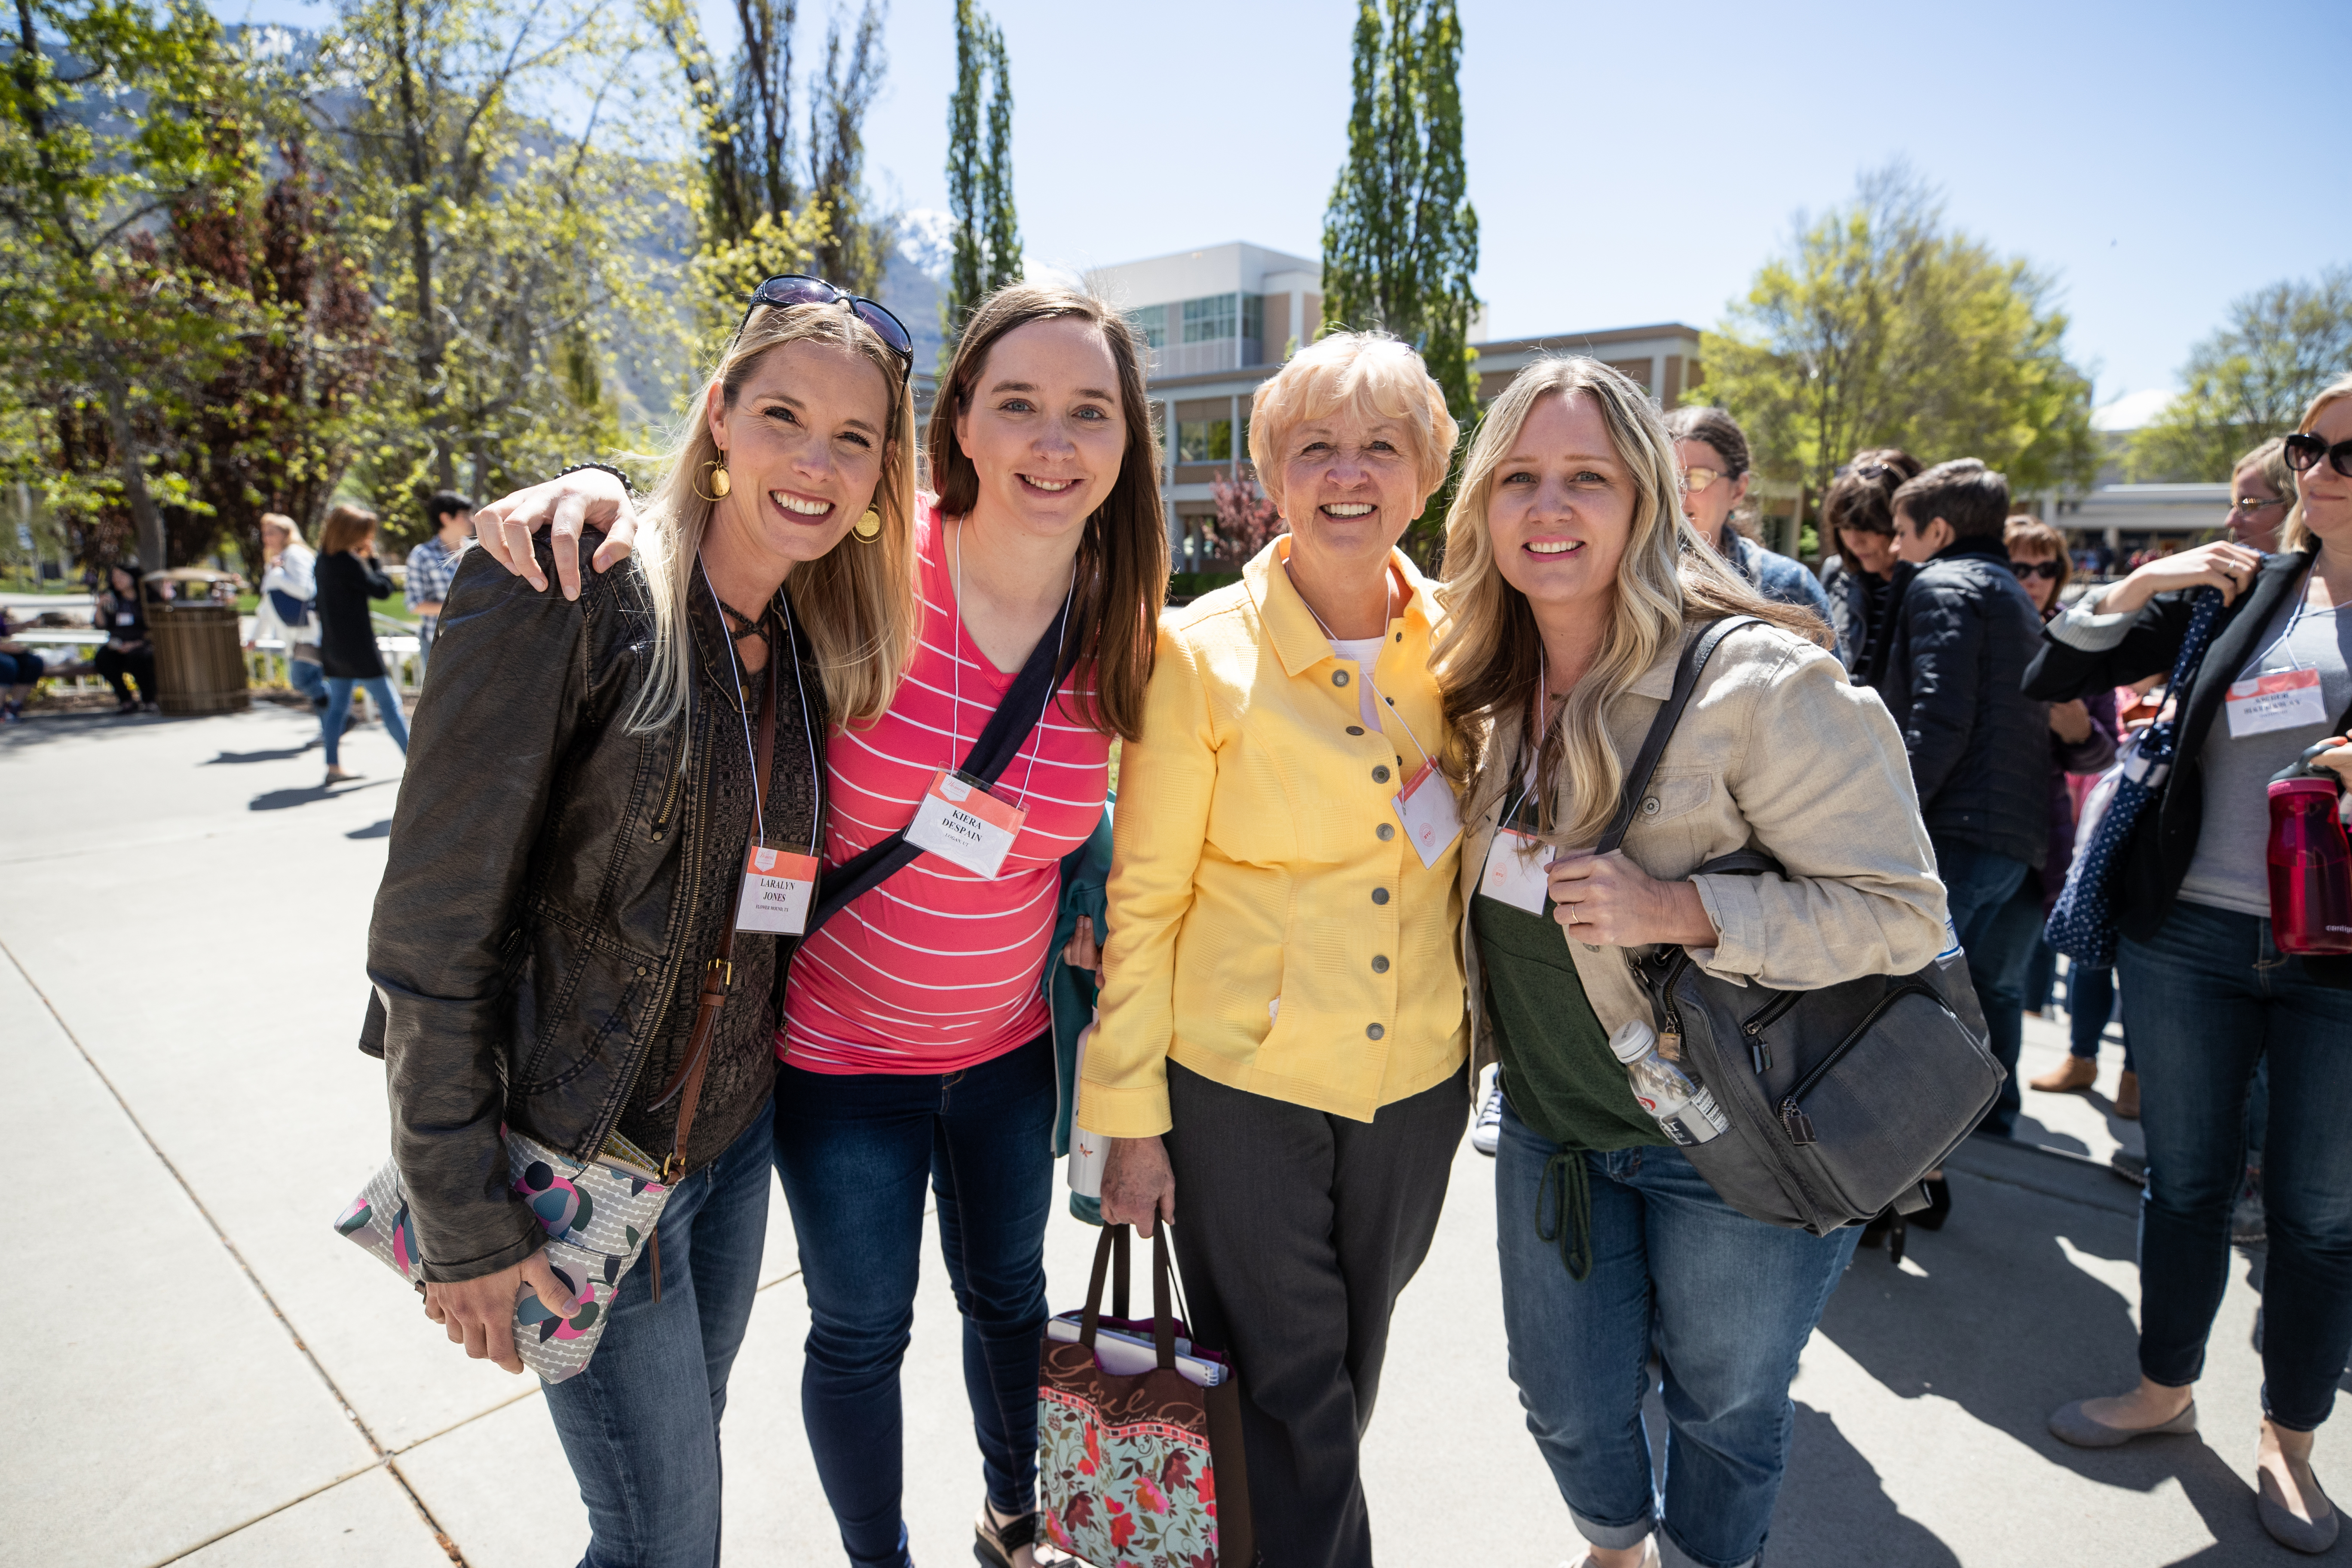 Women gather outside the Marriott Center as they head to their classes during the 2019 Women's Conference, on May 2, 2019.